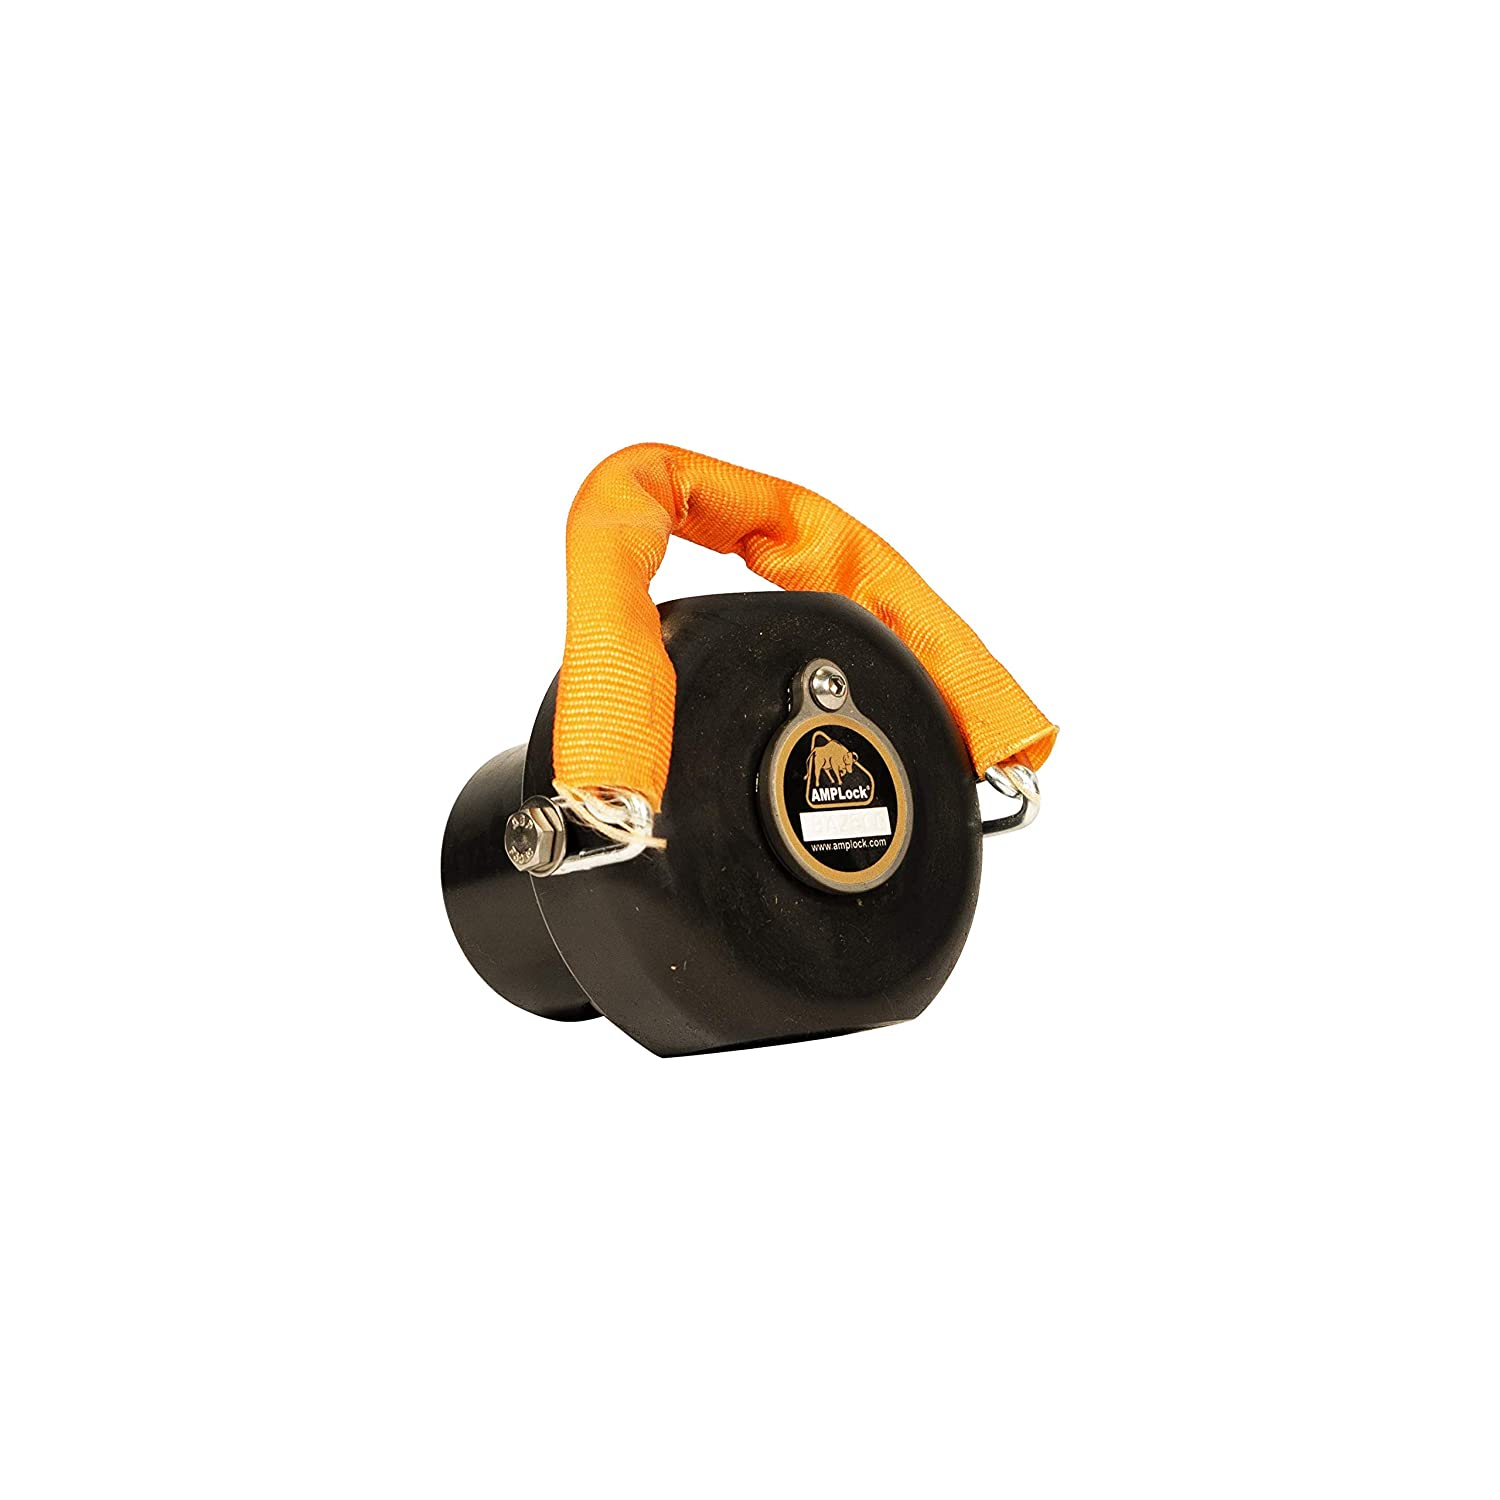 AMPLOCK U-BA212 Trailer Lunette Ring Lock for 2 1//2 inches Ring